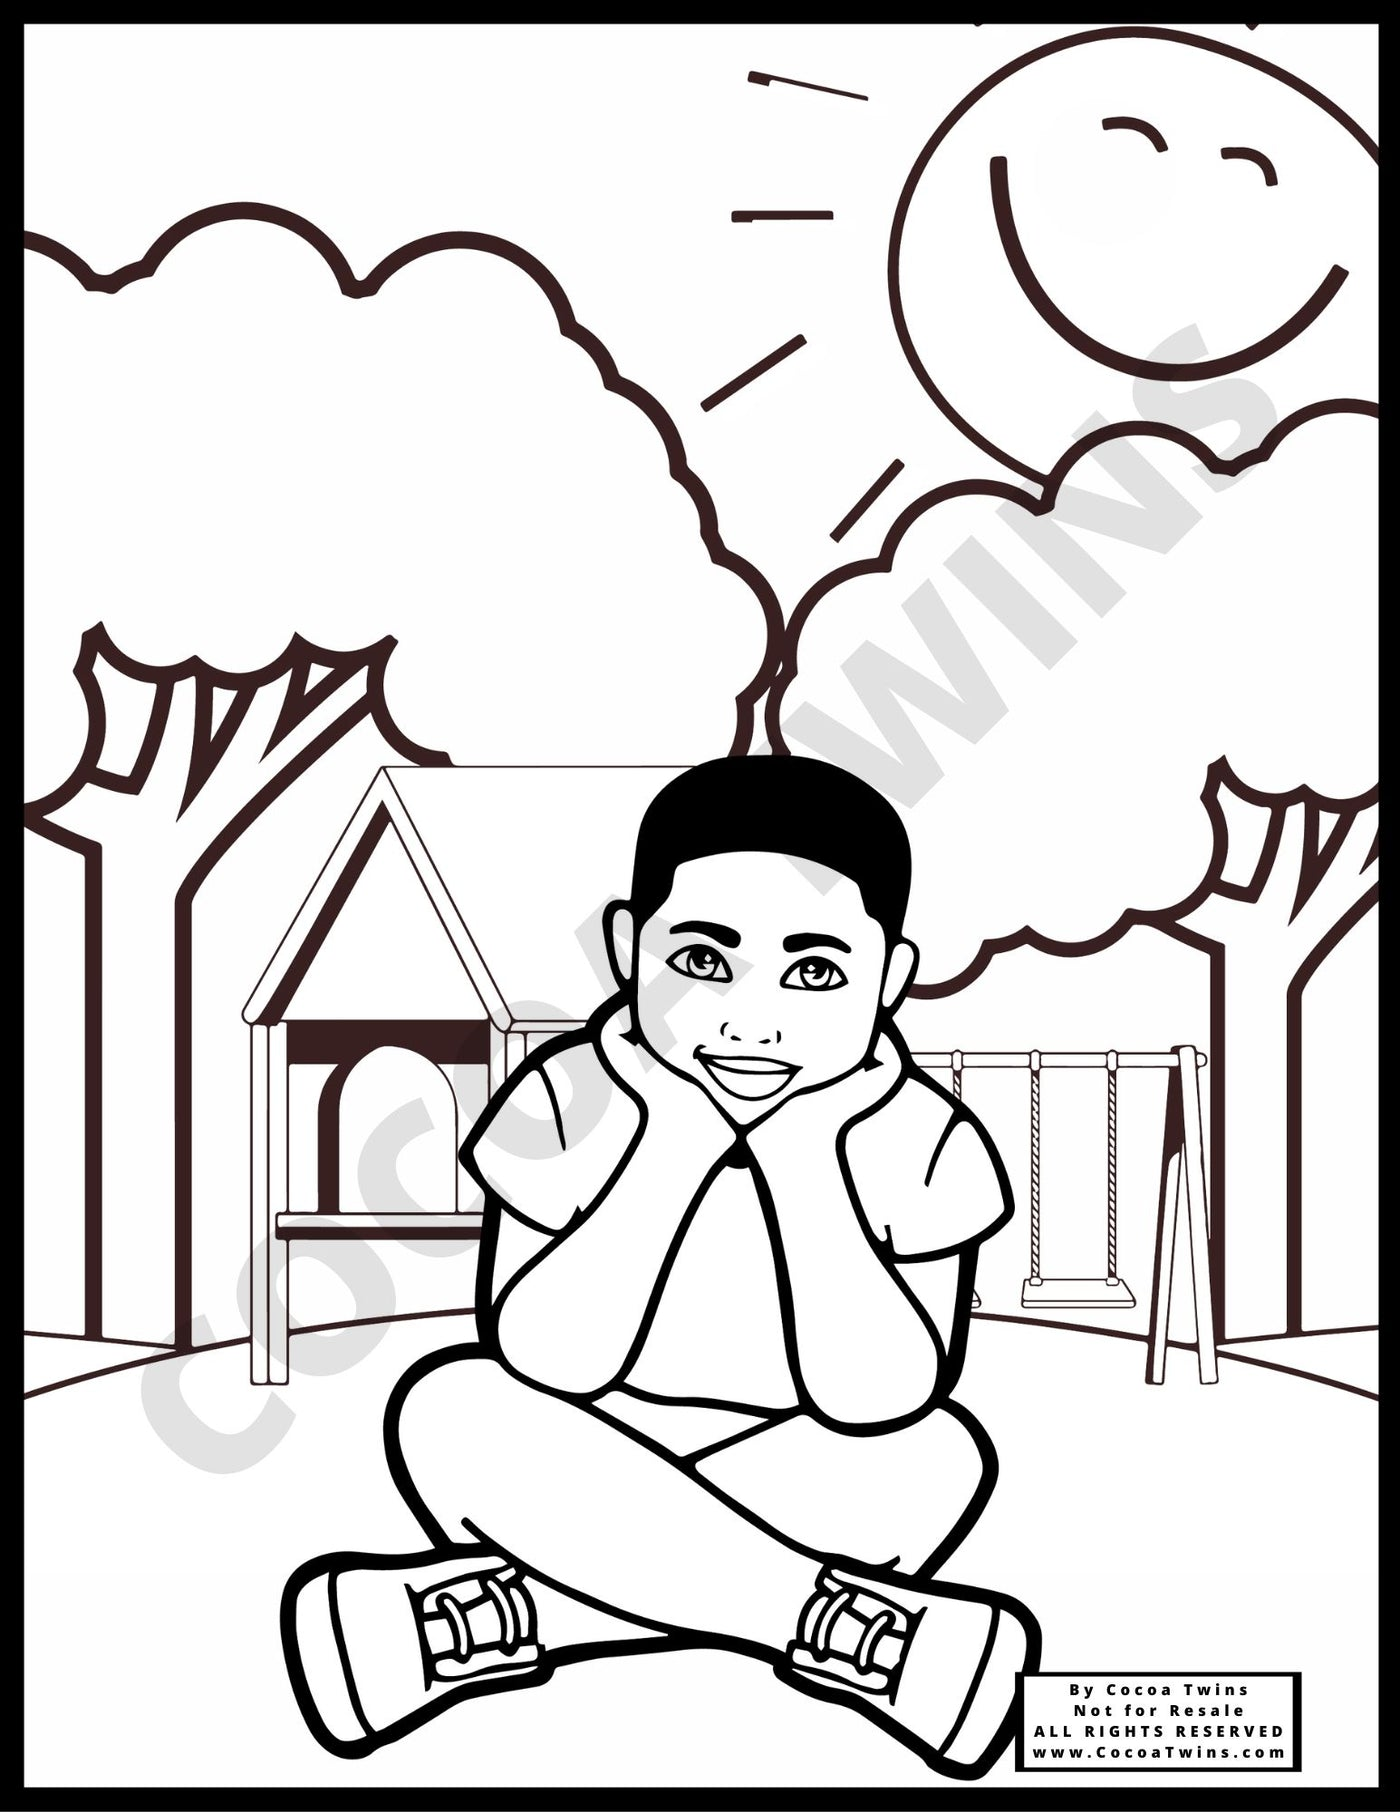 Coloring Page - Playground Bound 02(JPG Format Only)